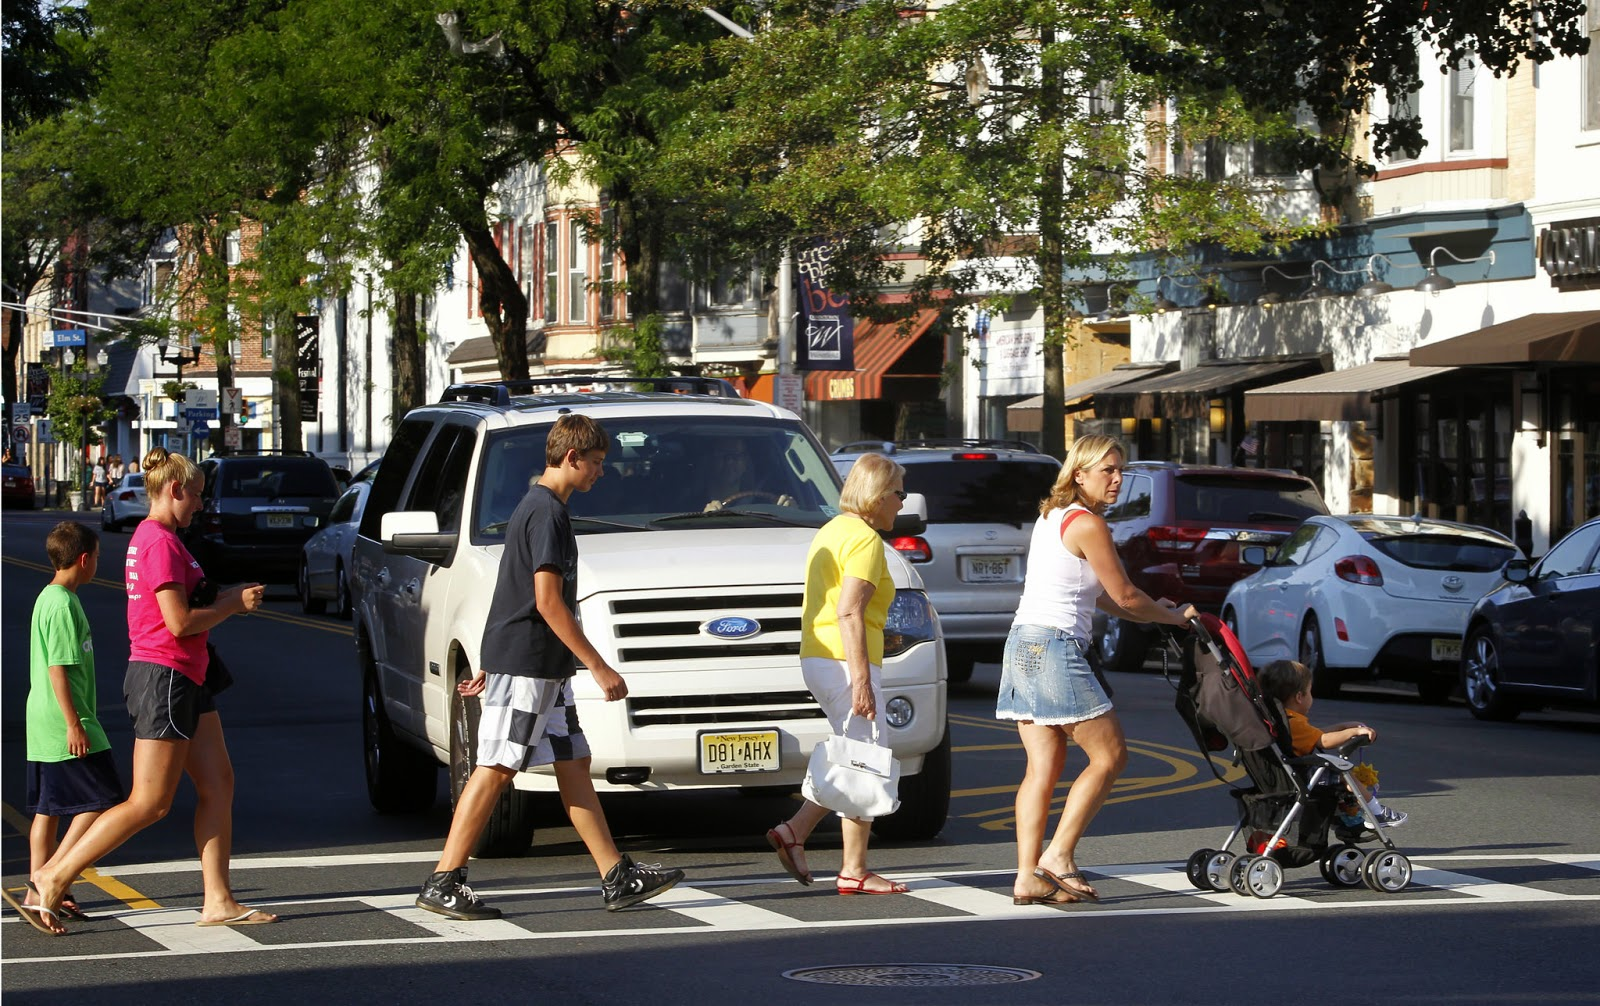 What does the Law say about Observing a Pedestrian in a Crosswalk?